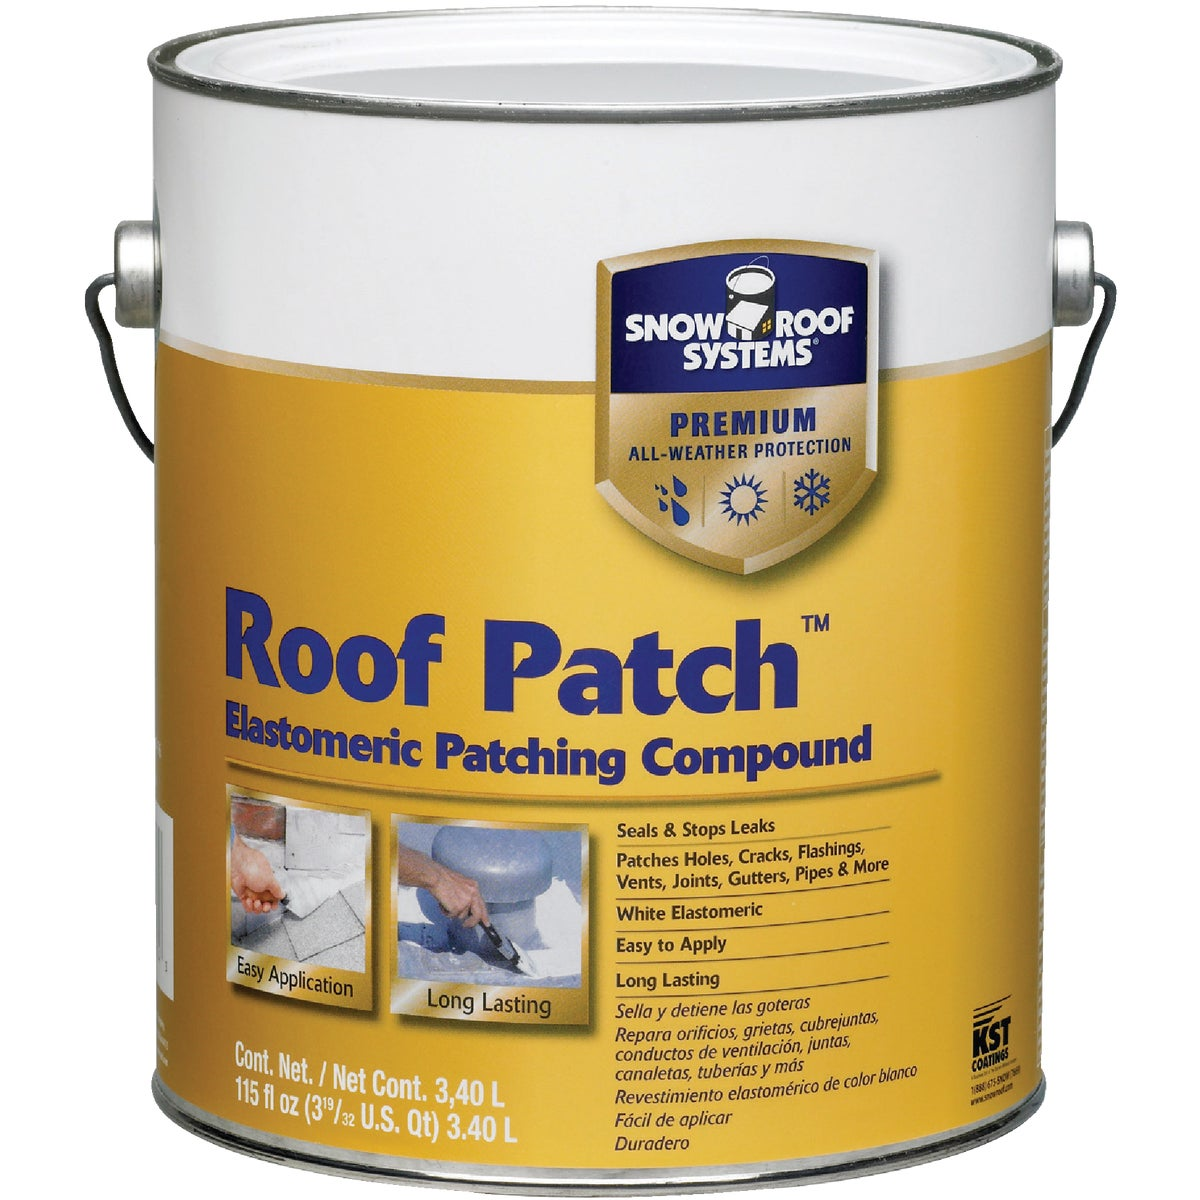 GAL ROOF PATCH